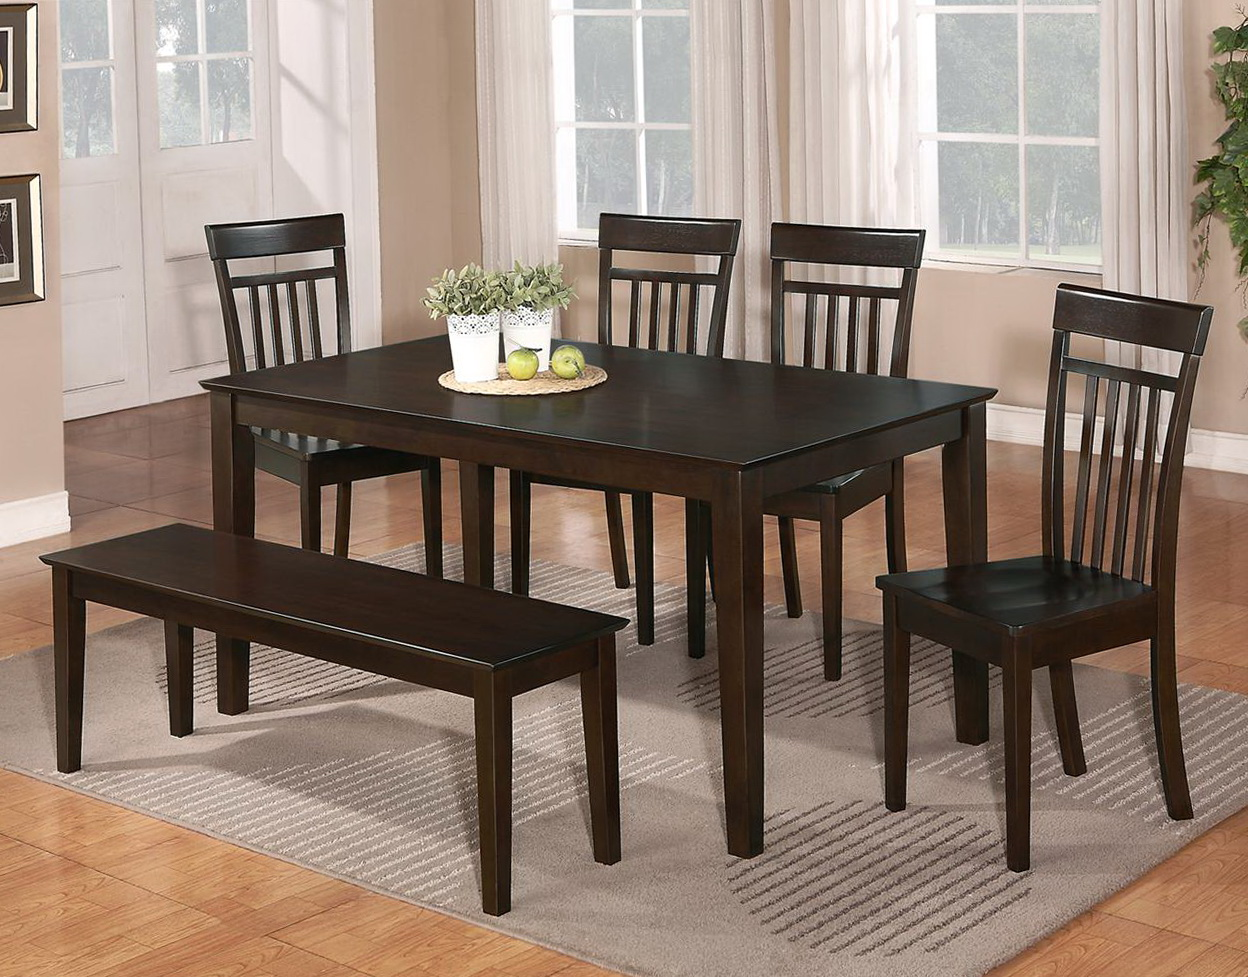 Dining Room Tables With Benches And Chairs Home Design Ideas